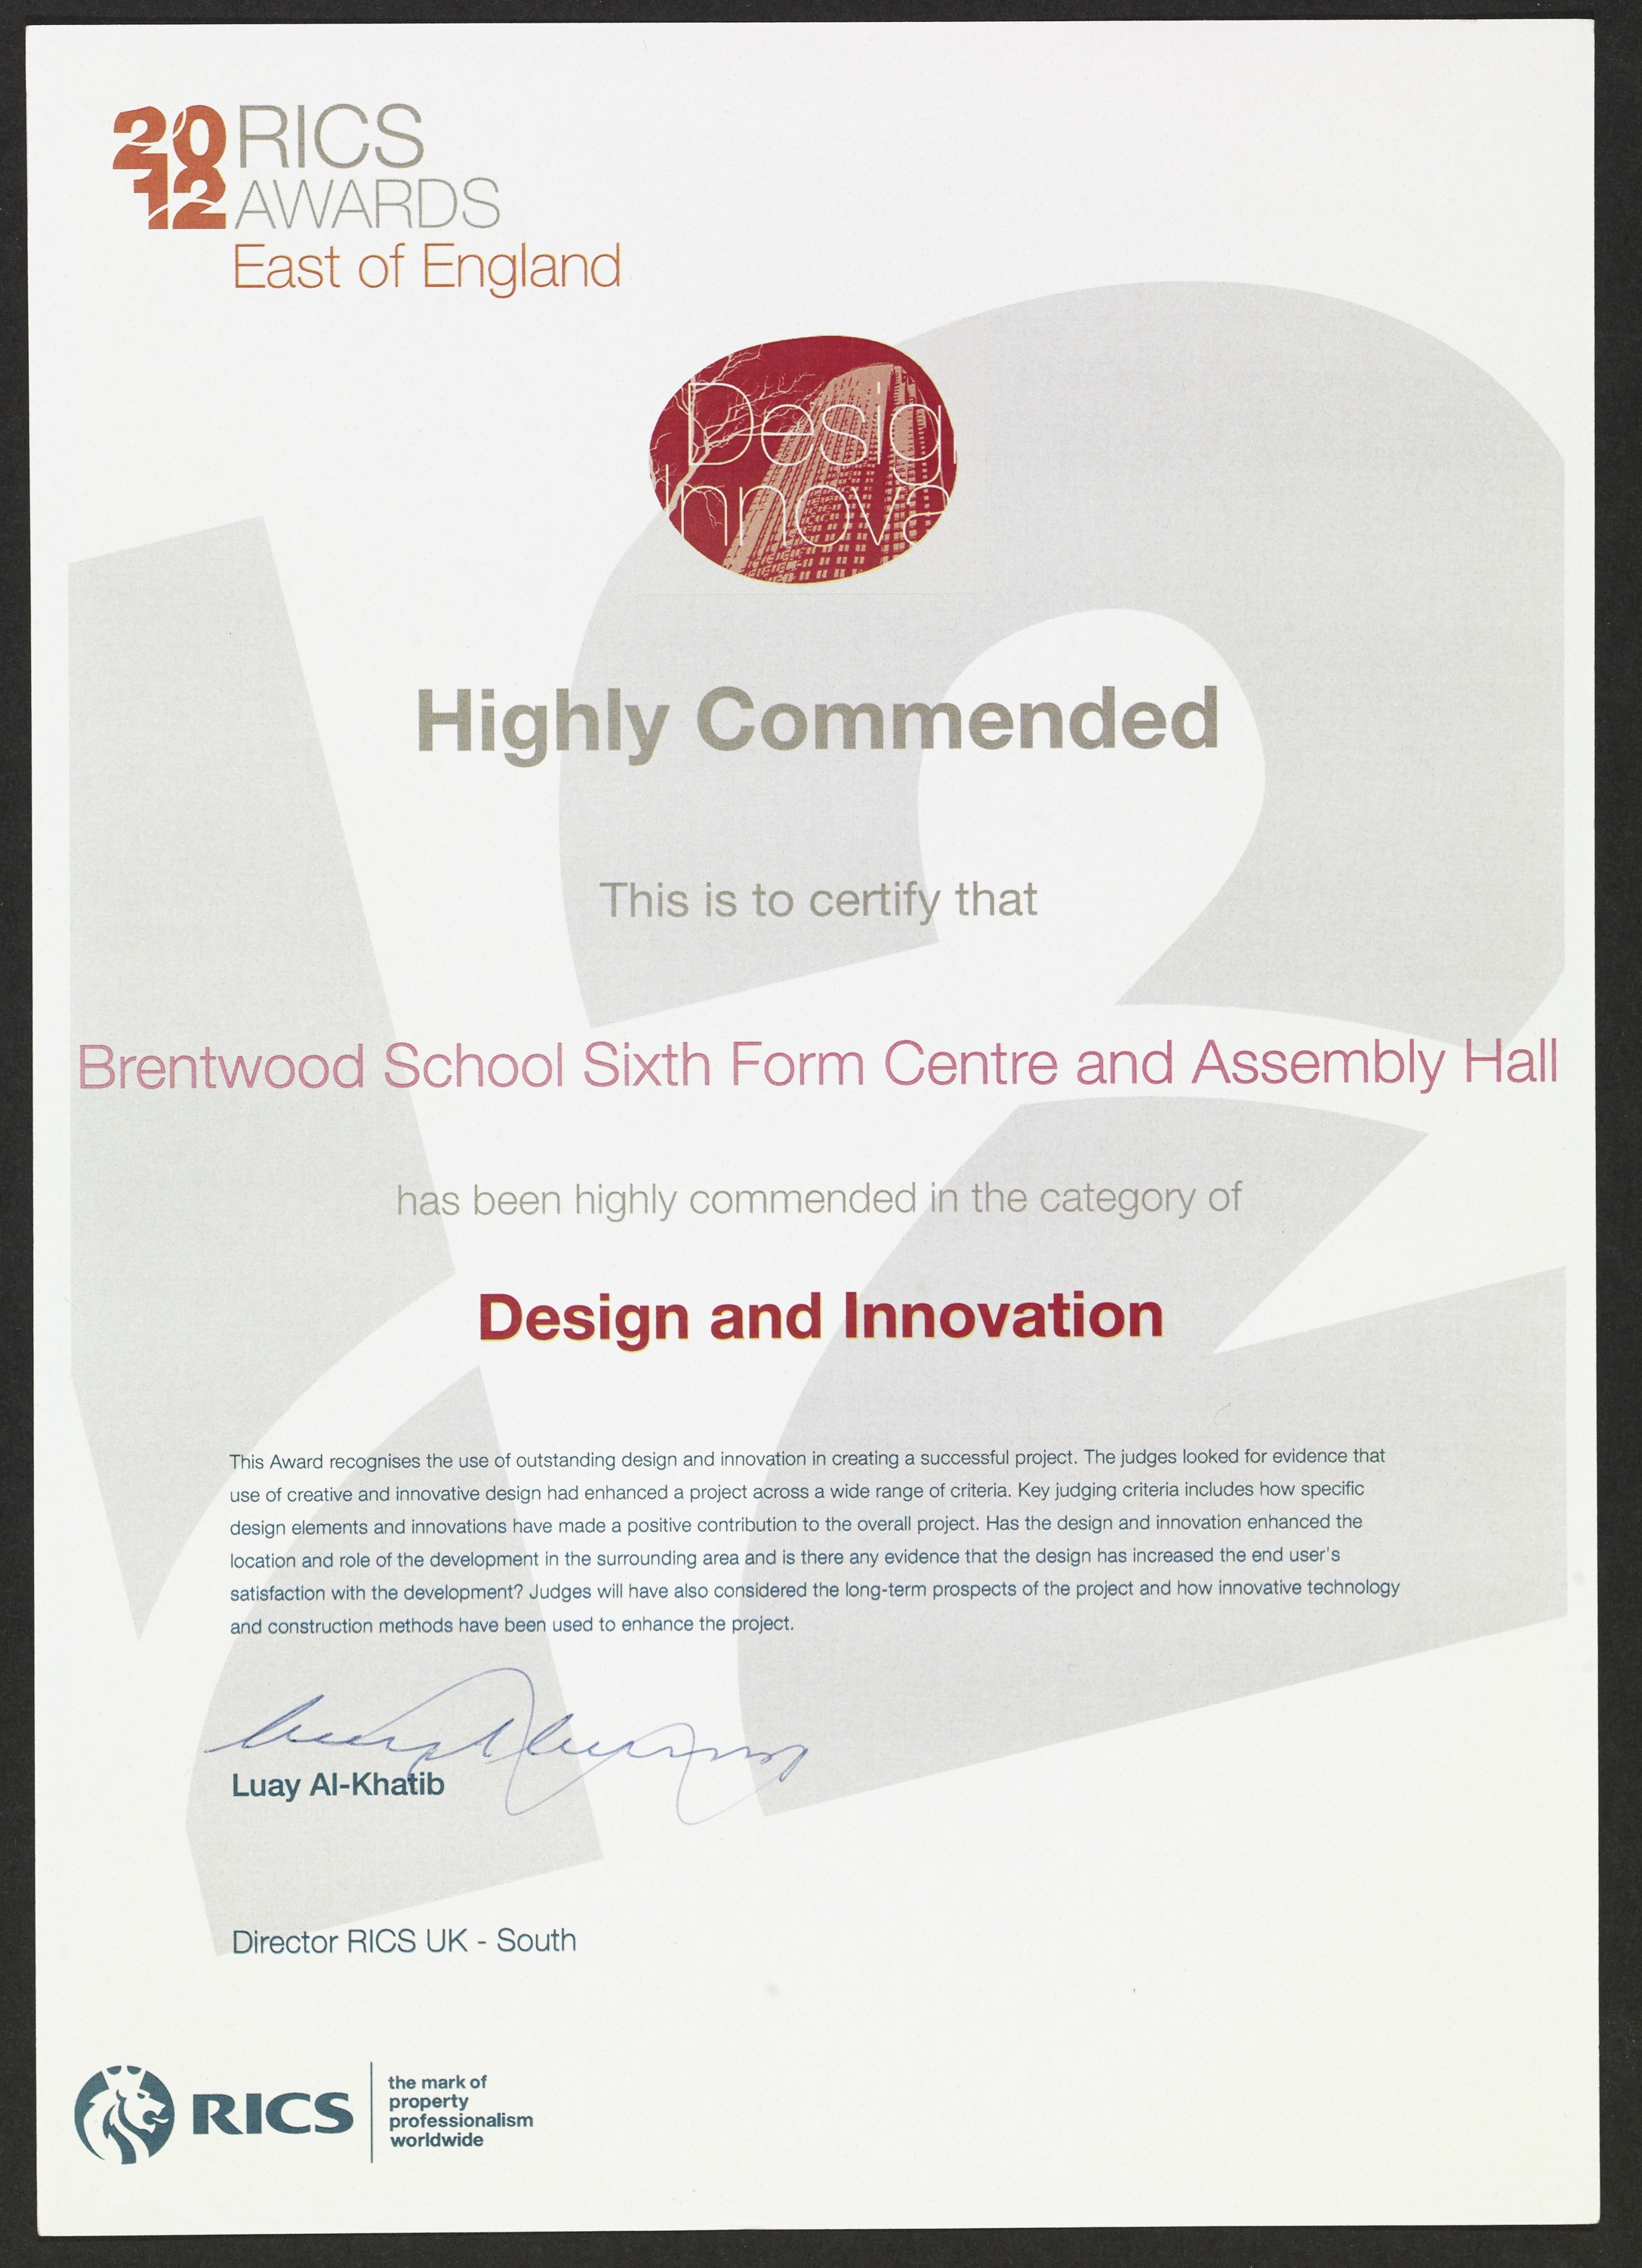 Brentwood School, Sixth Form Centre won the RICS East Highly Commended Award 2012